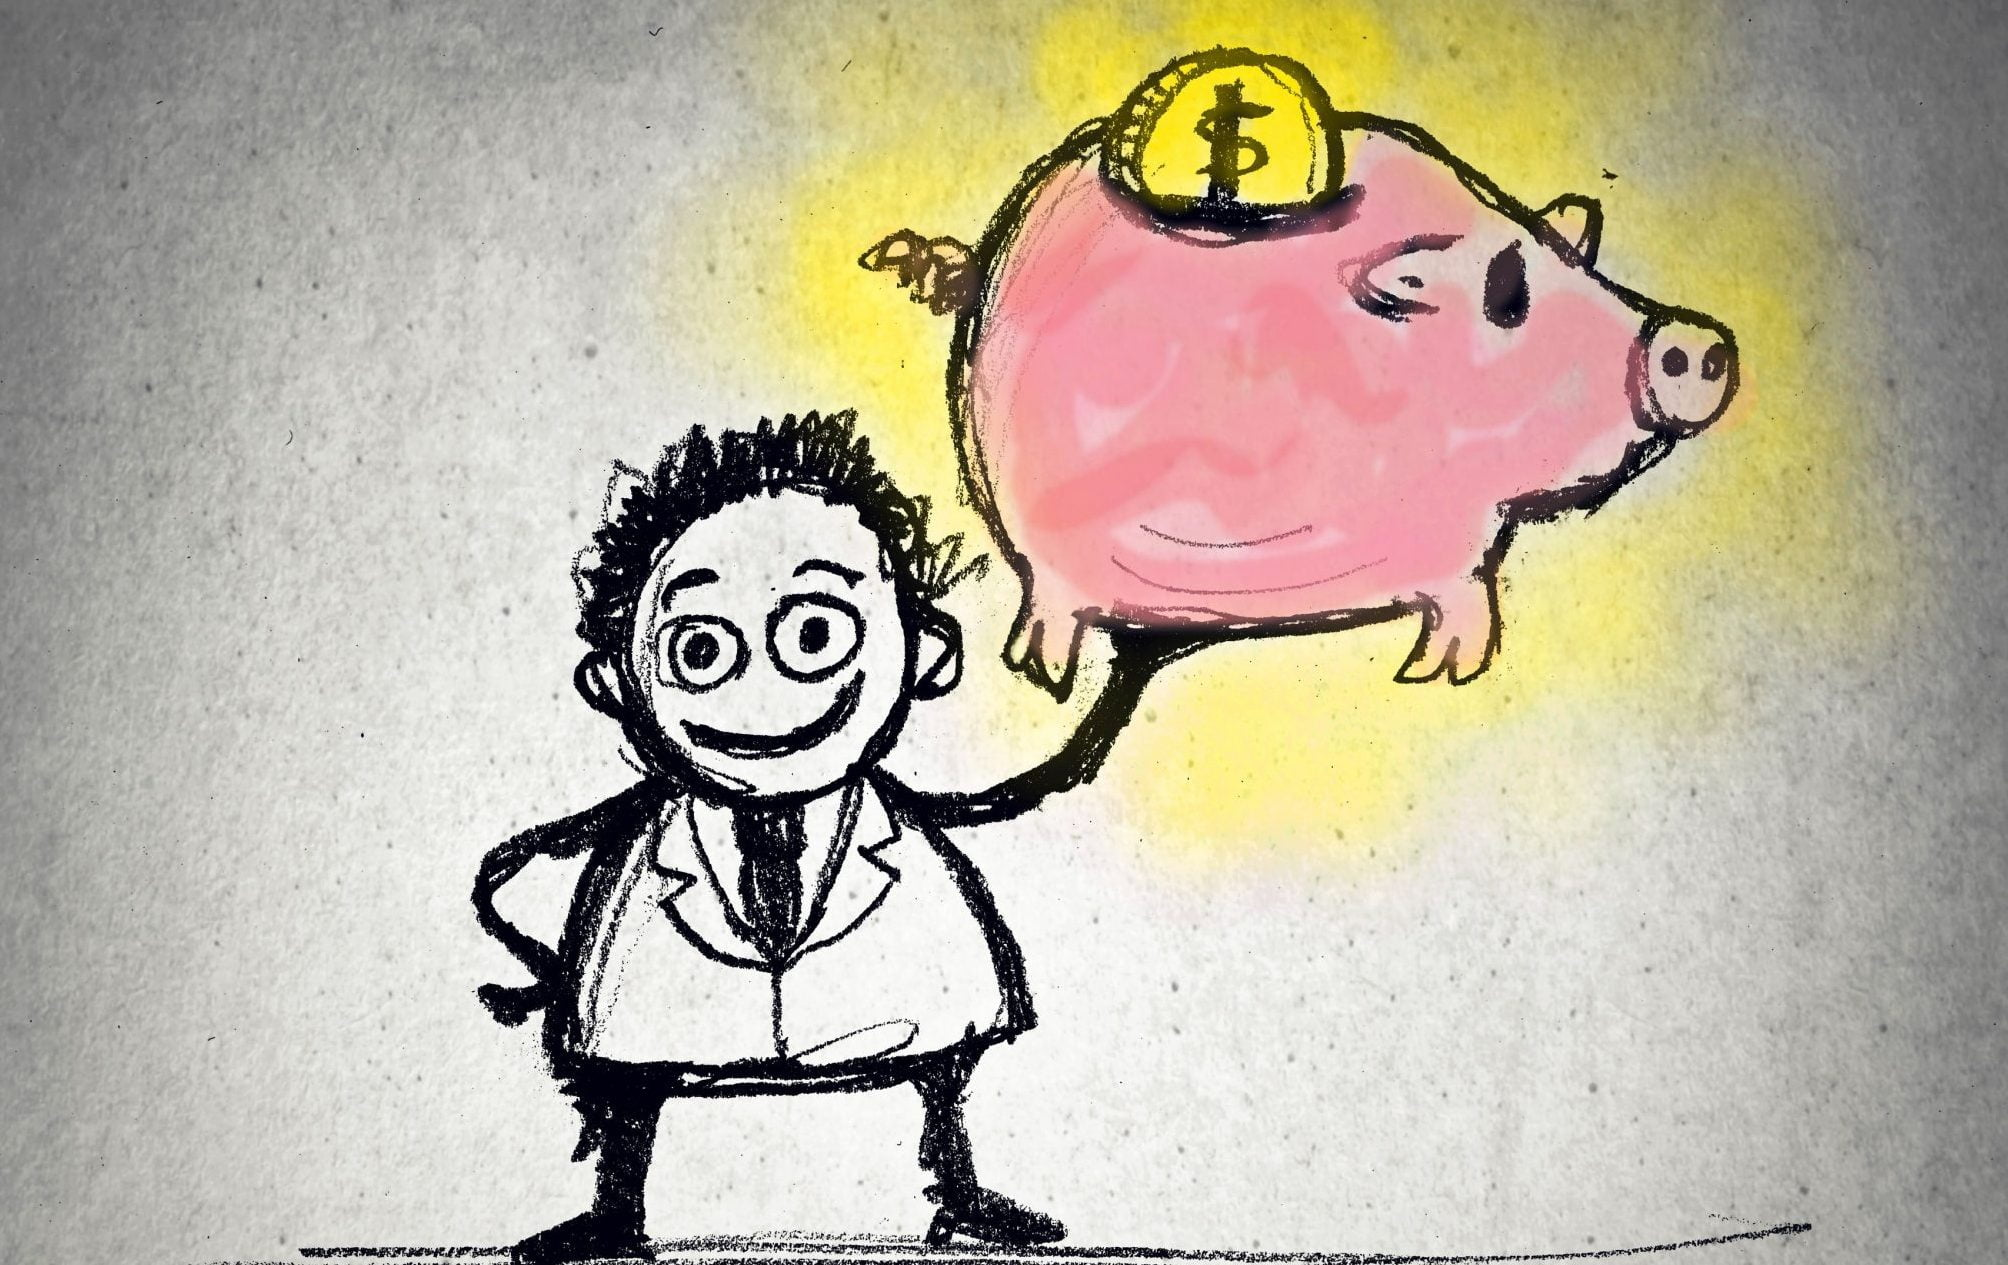 an pharmacist holding up a piggy bank employee pharmacist wages money earning funding salary salaries wage